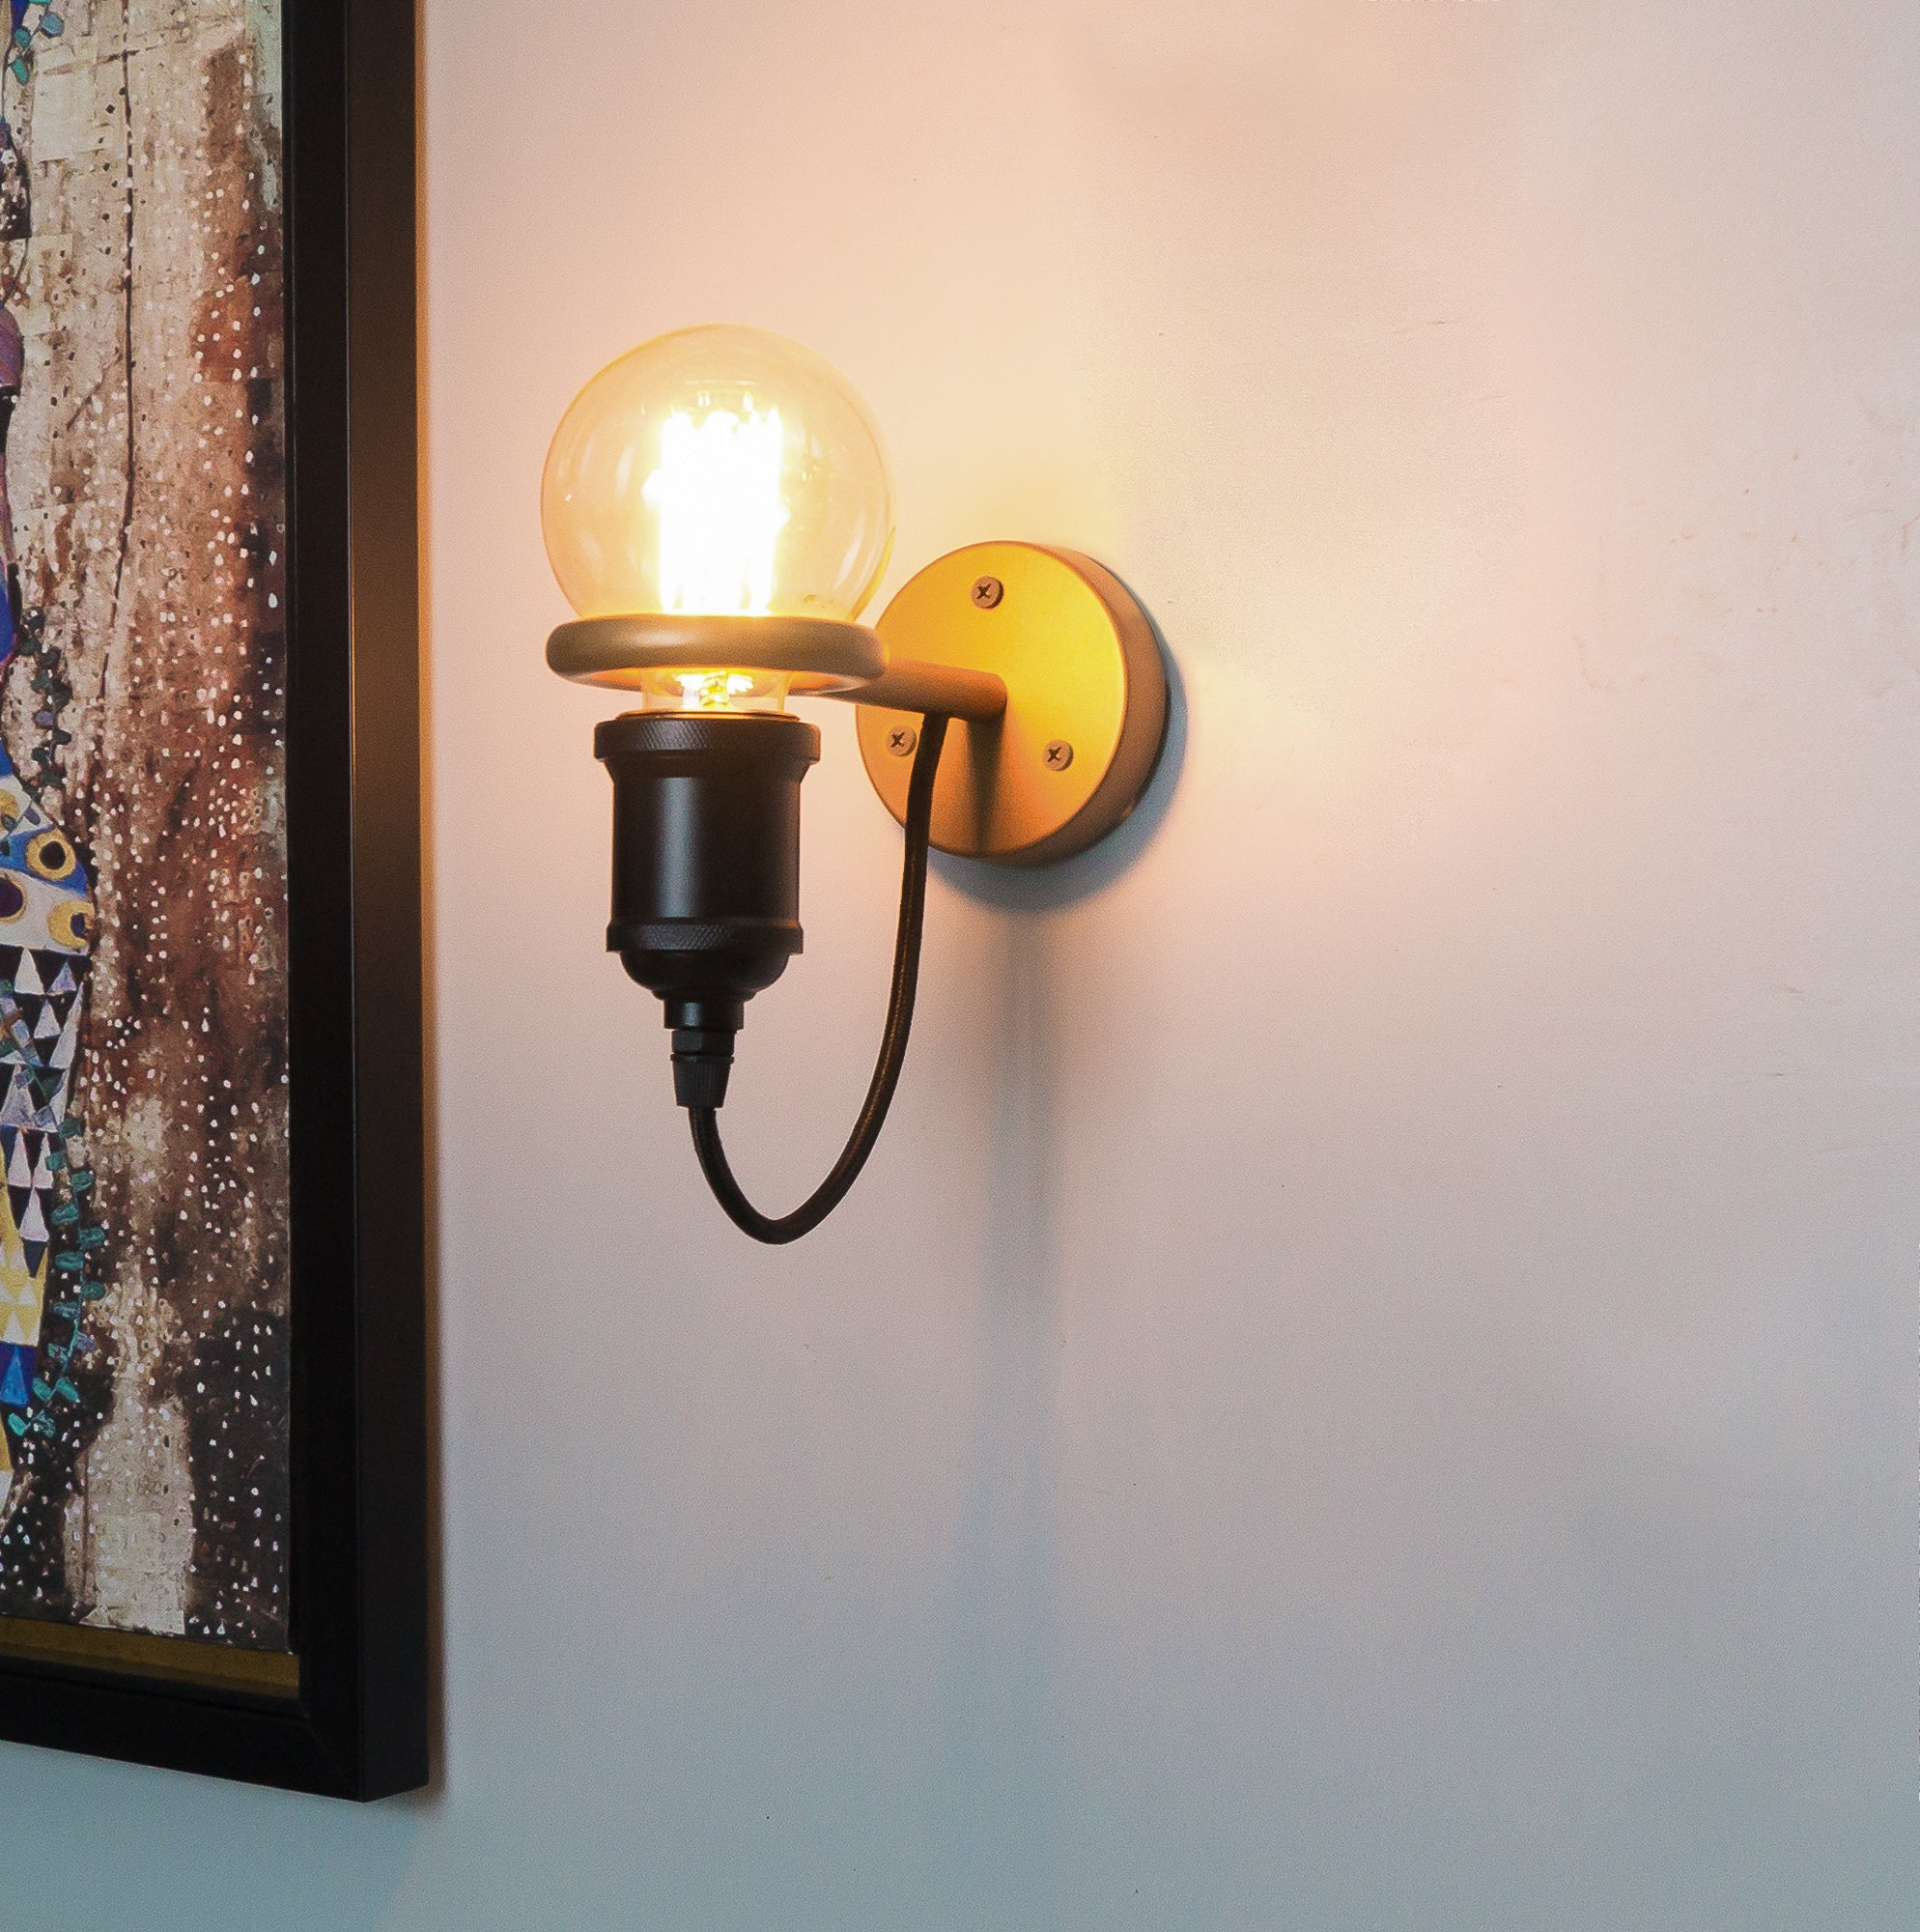 CWS103 Nile Golden Ring Wall Lamp